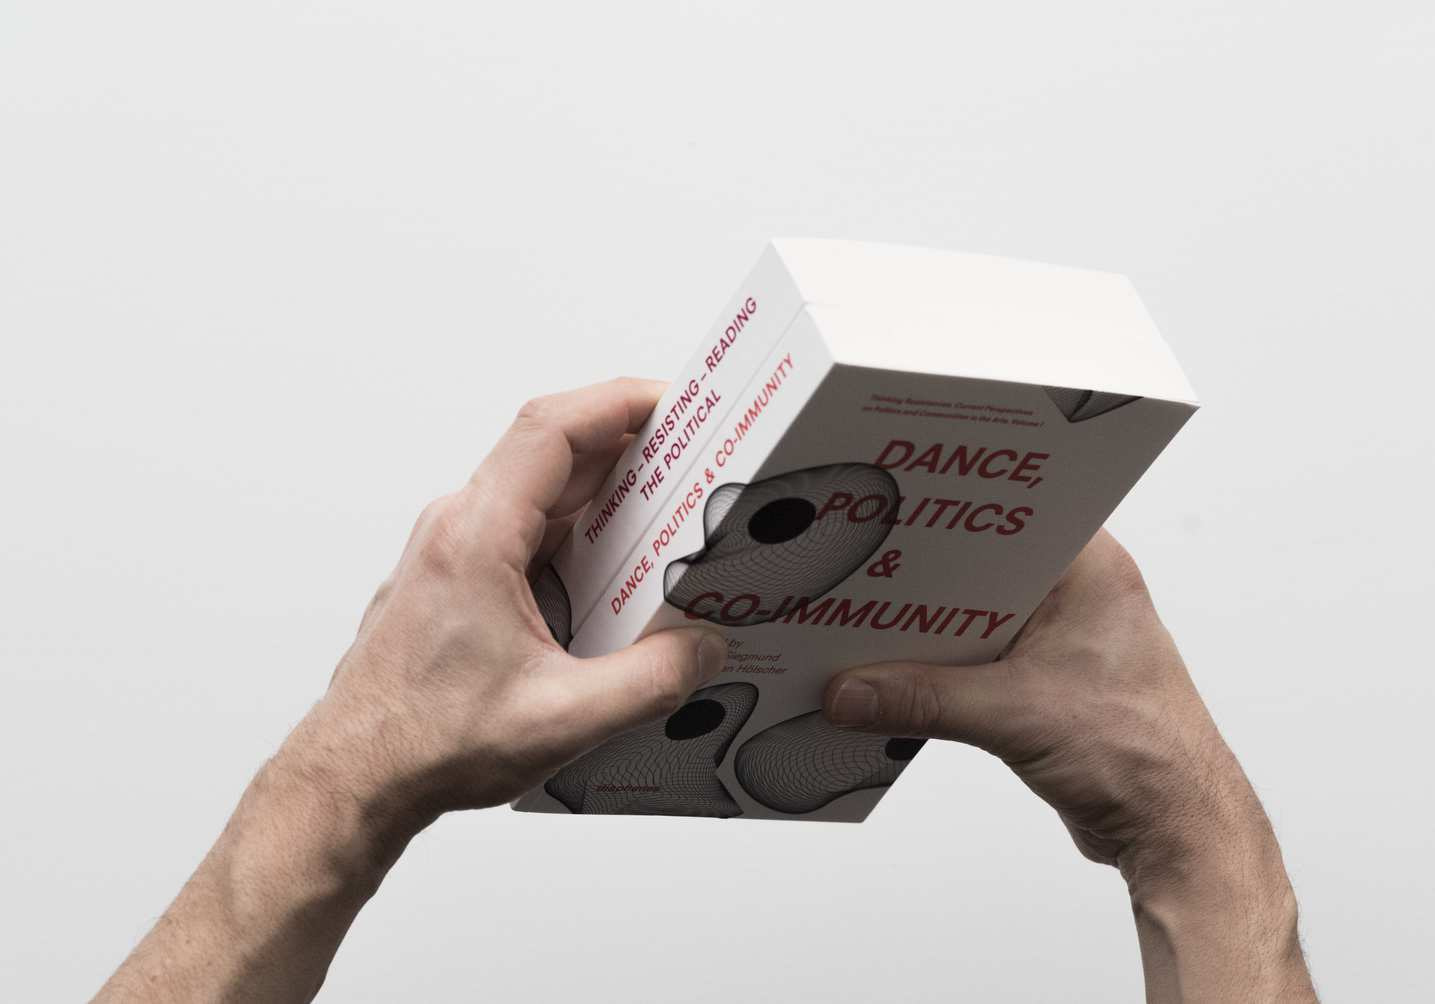 dance-politics-co-immunity-reader-1-1435x1004px